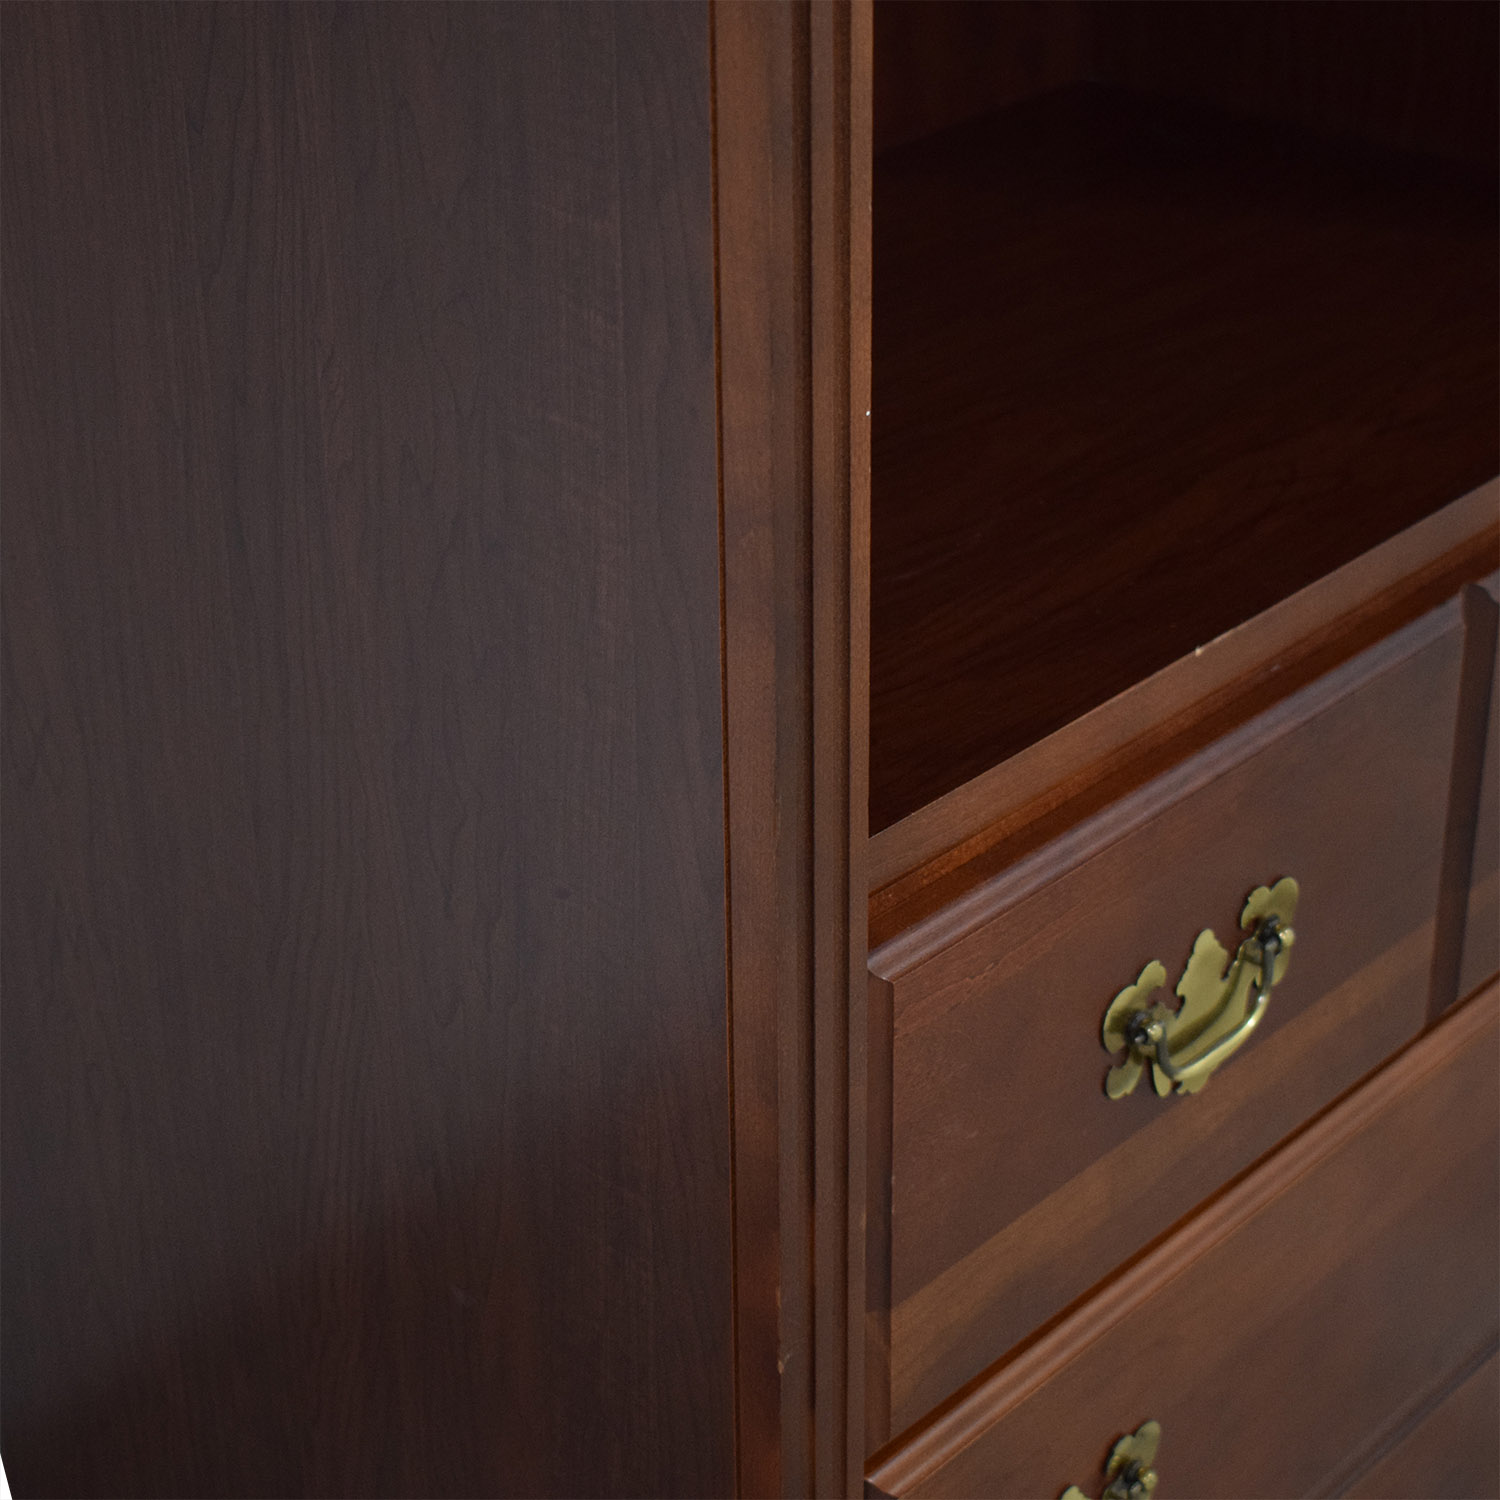 Broyhill Furniture Broyhill Book Case with Light on sale